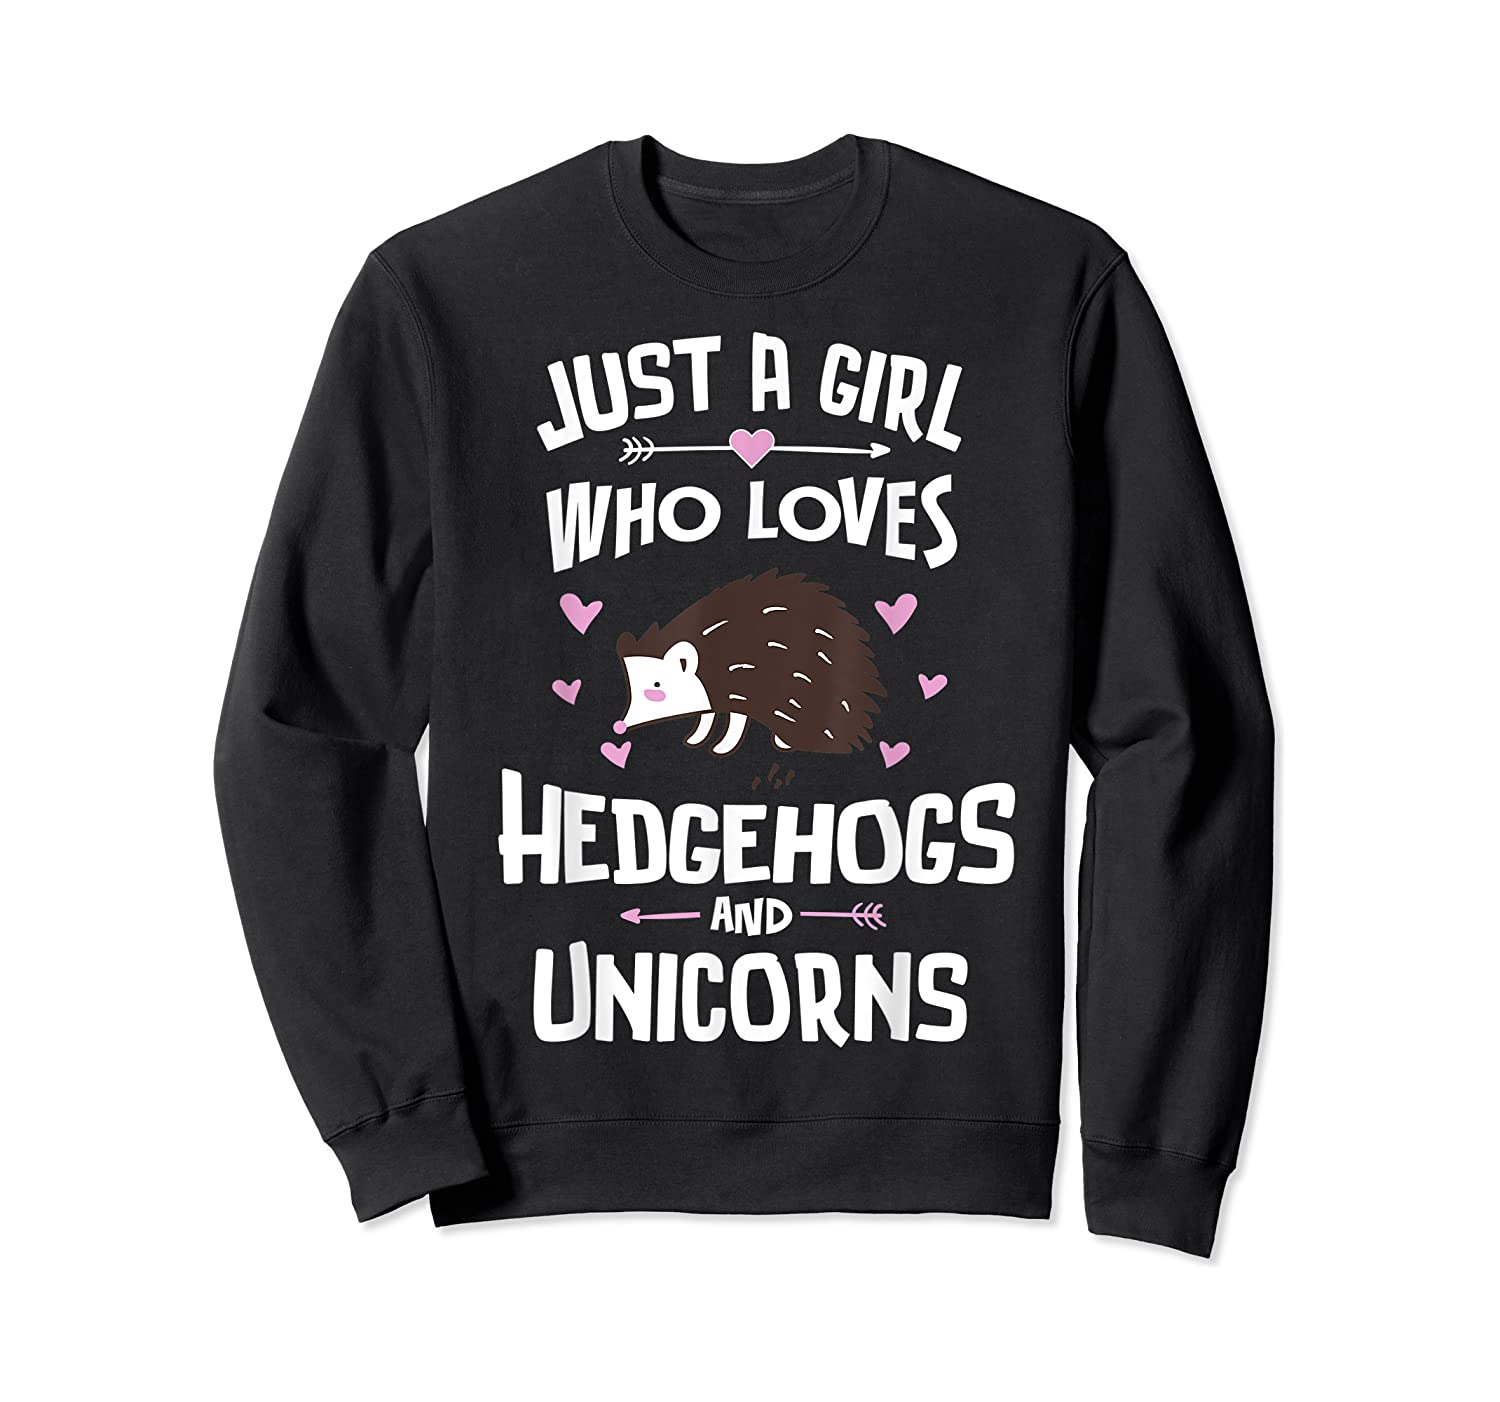 Just A Girl Who Loves Hedgehogs And Unicorns Gift Shirts Crewneck Sweater